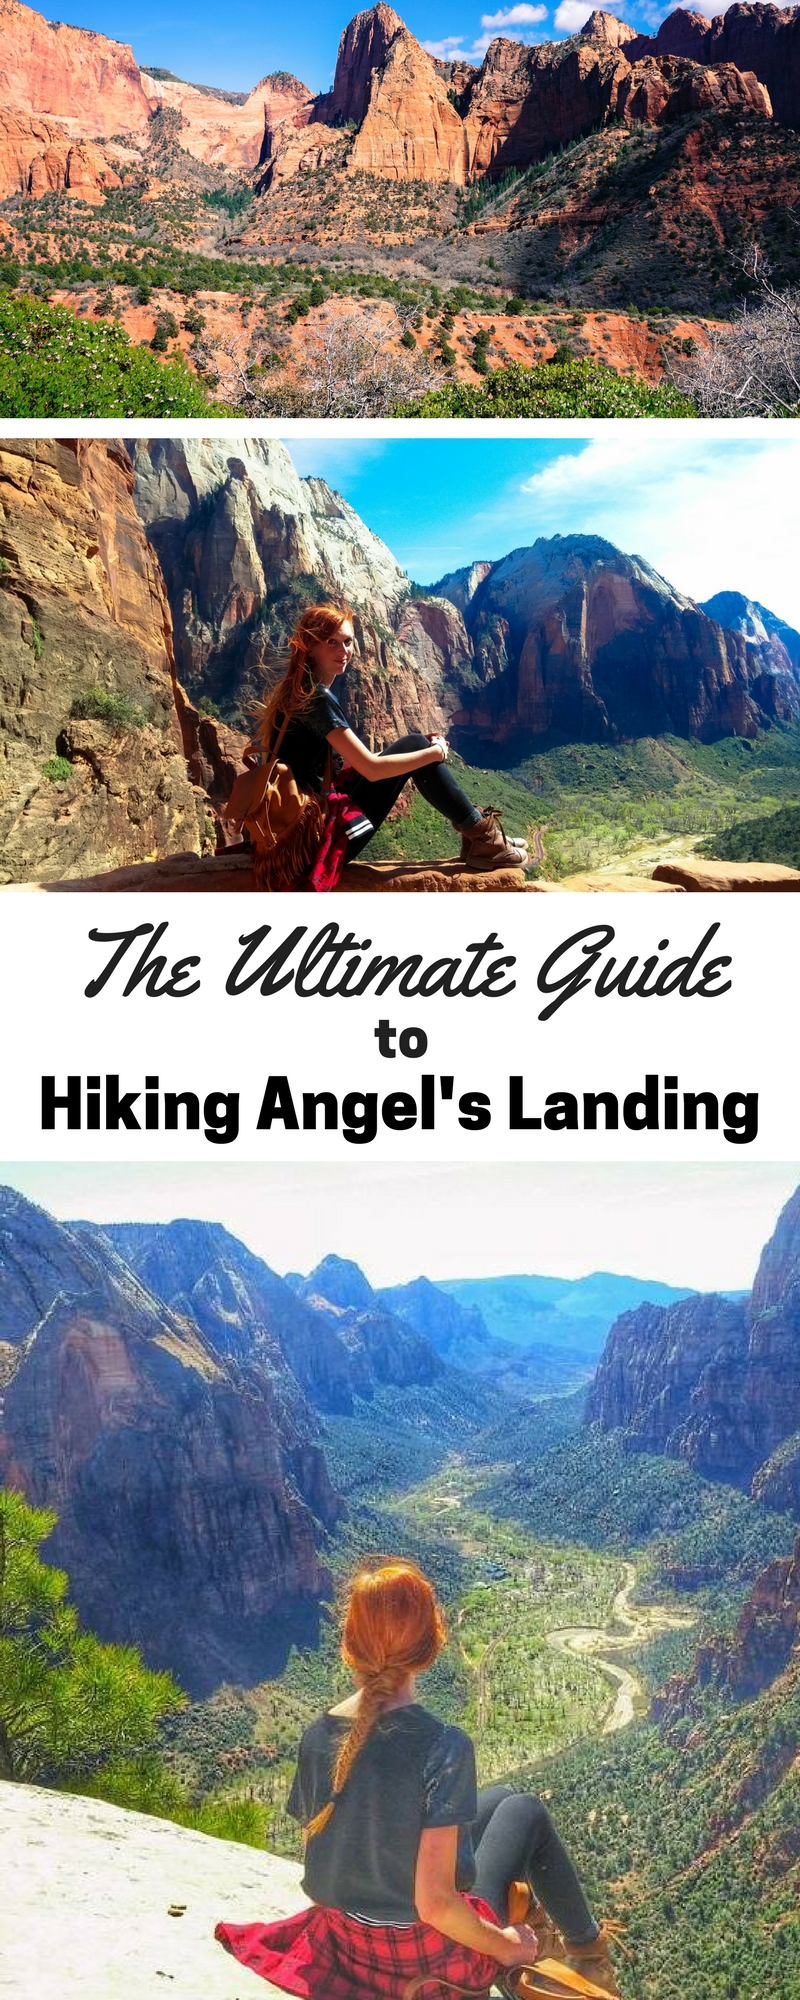 The Ultimate Guide to Hiking Angel's Landing